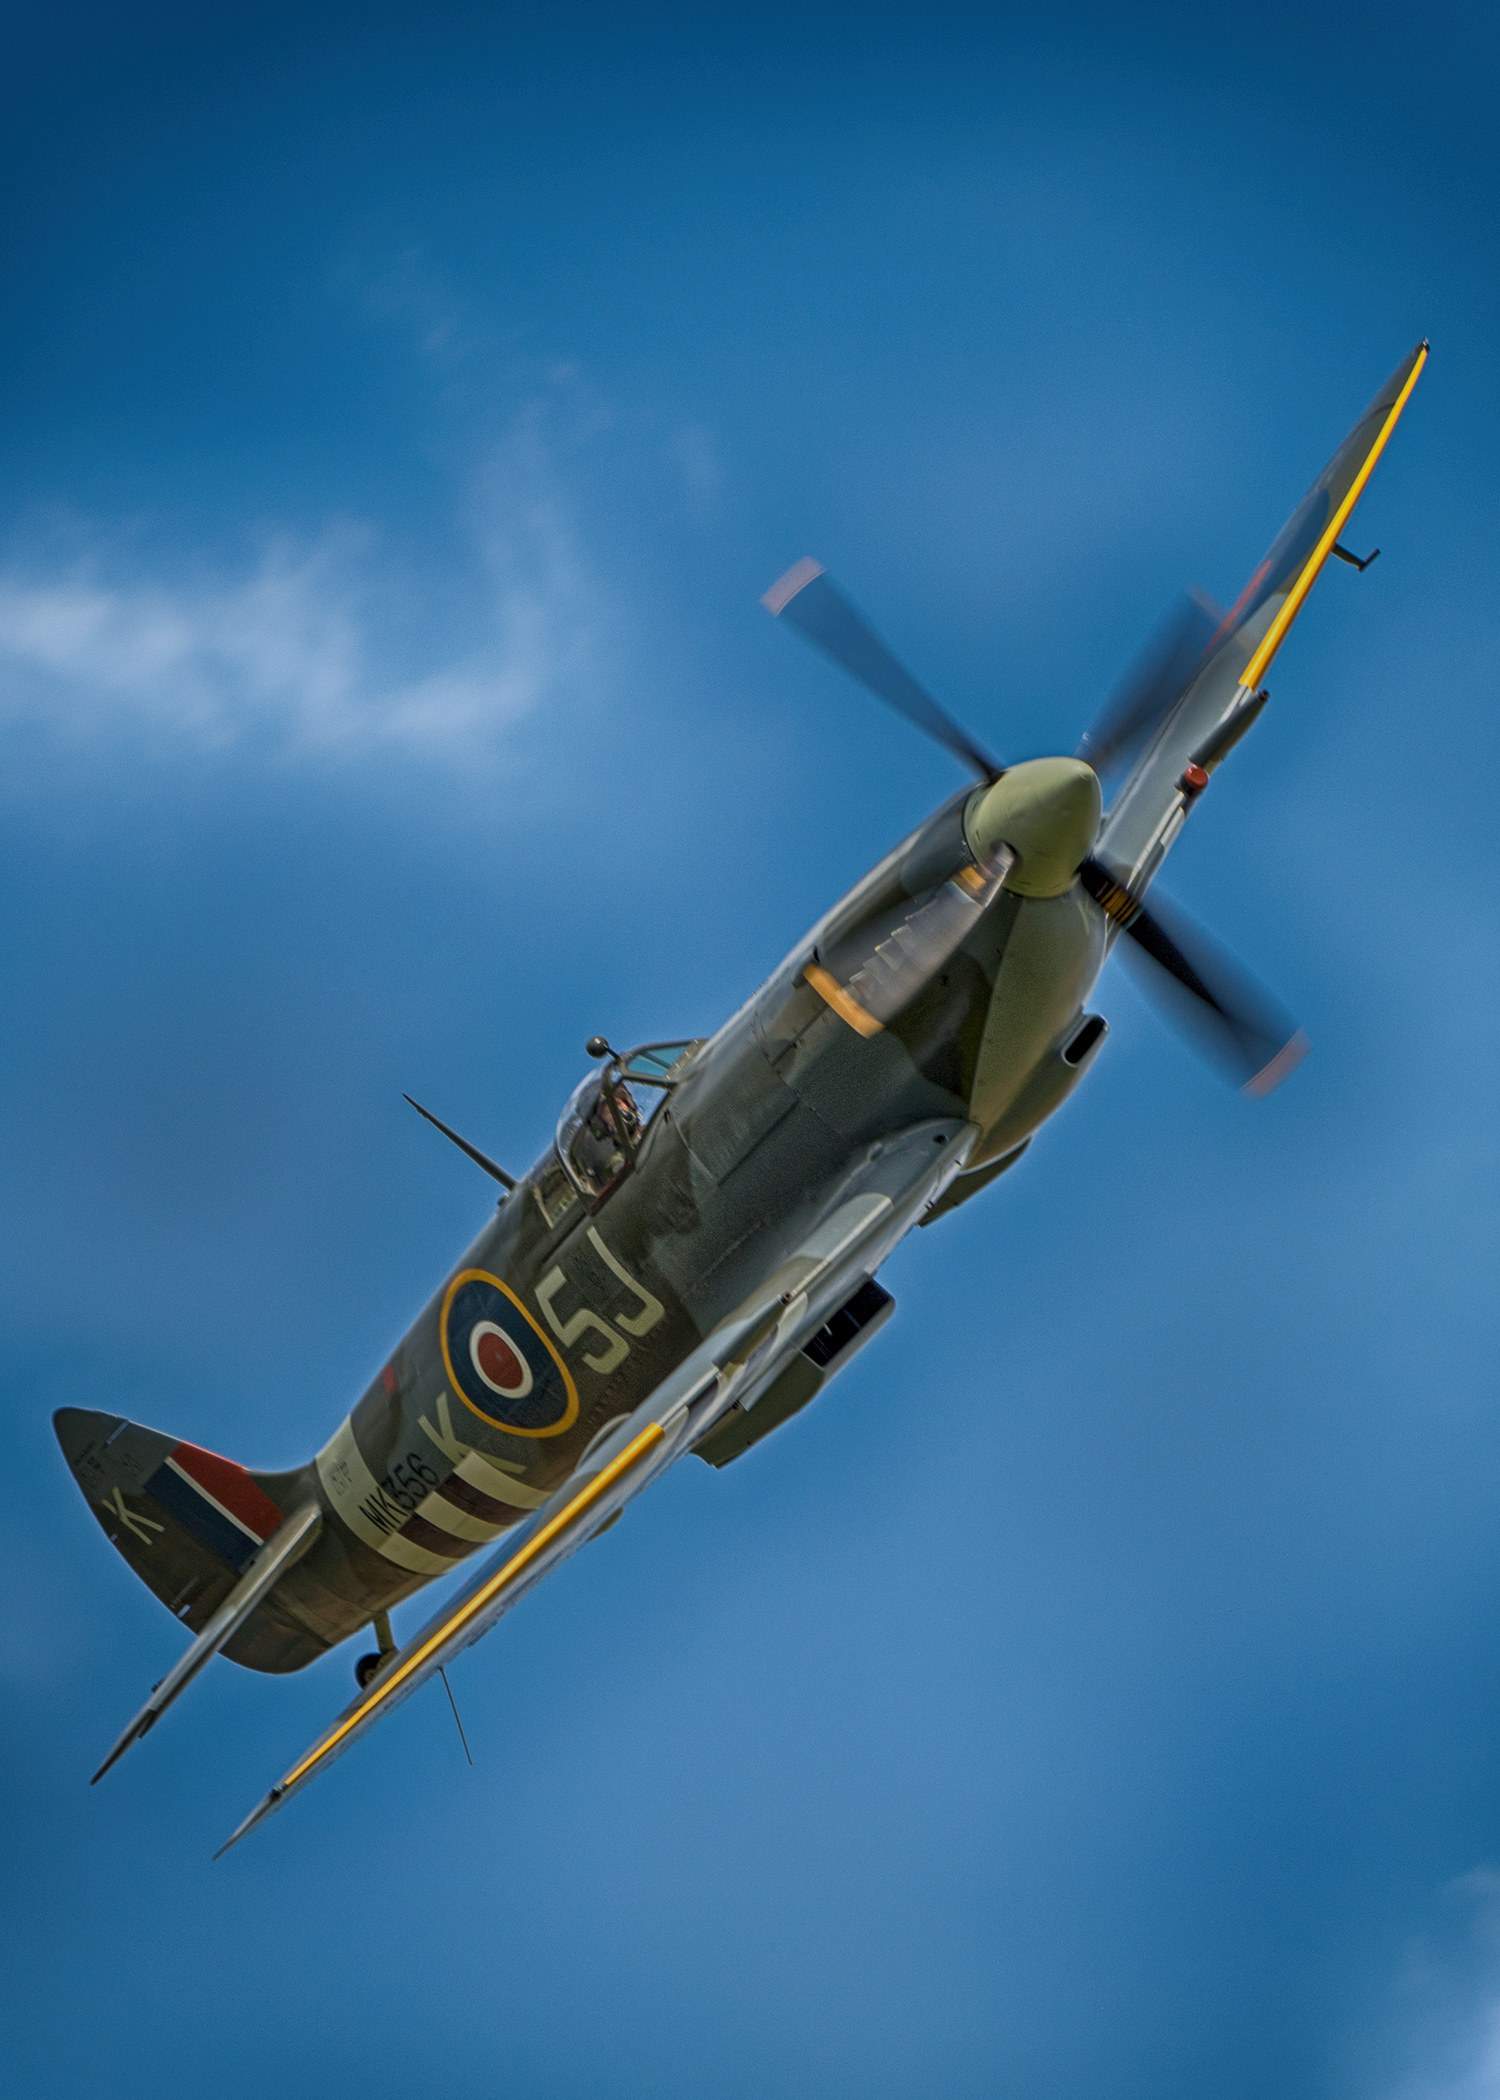 If you look closely on this Spitfire, you can see a series of white stripes on the wings and underside of this fighter - those stripes are called invasion stripes and were painted using mops and whatever white paint could be found before the Allied invasion on D-Day. These are obviously a re-paint since the real stripes were applied crudely just hours before the invasion.